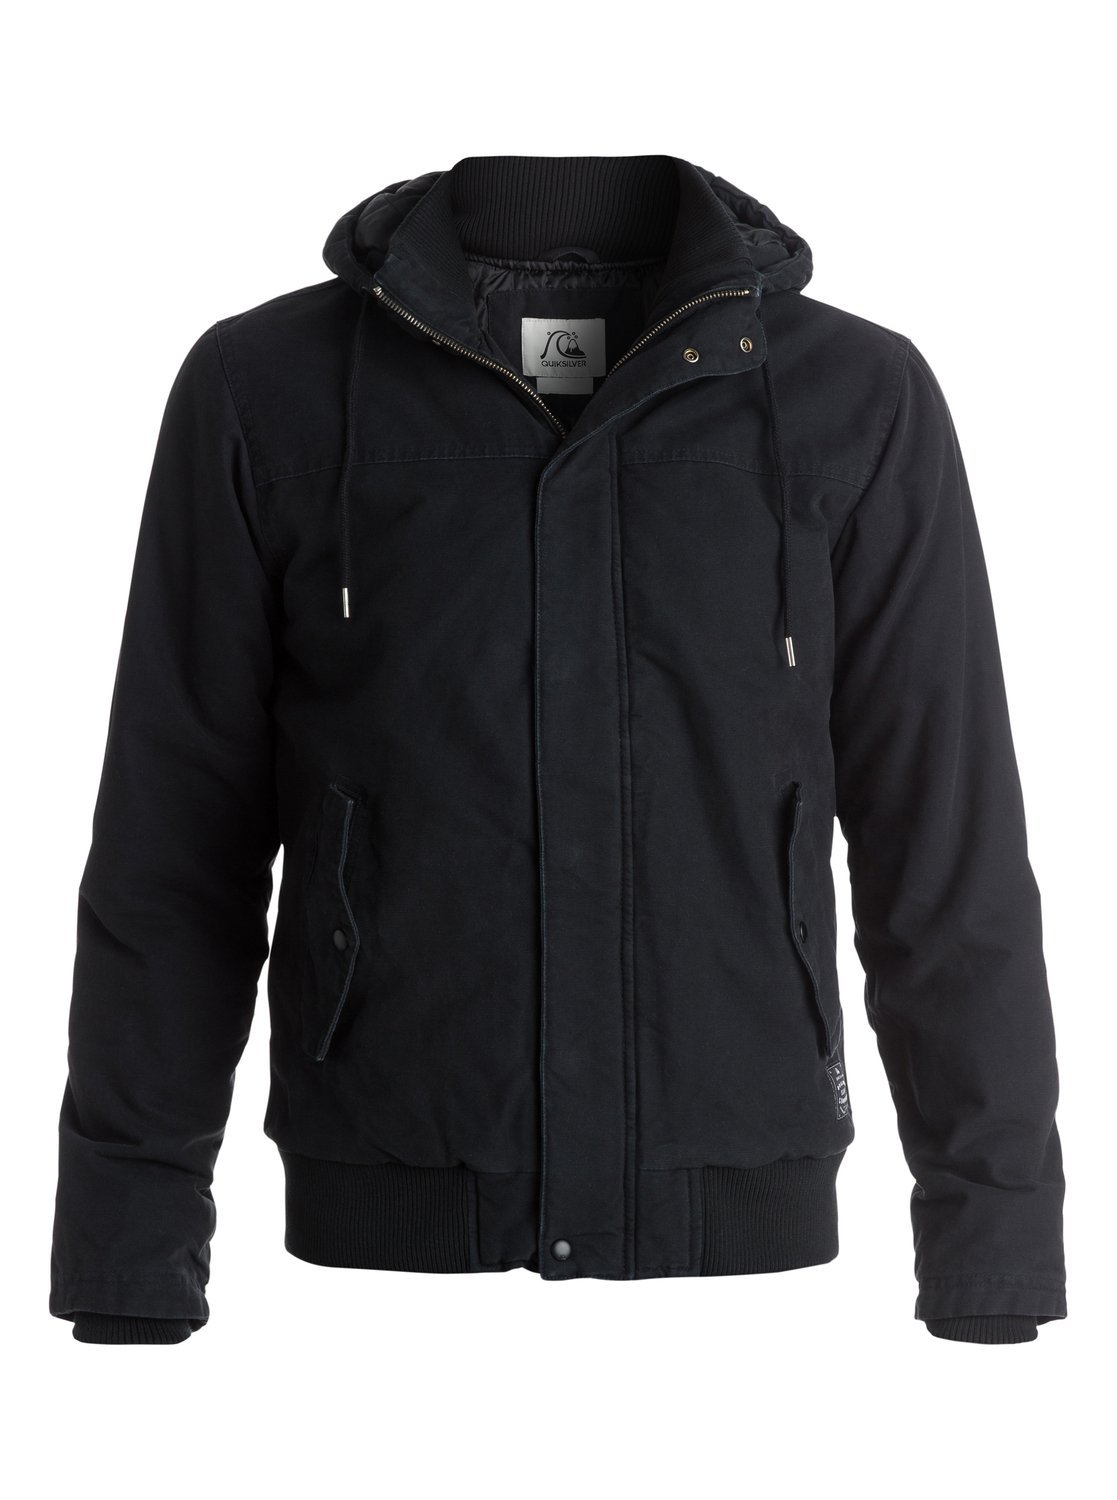 Quiksilver Men's Brooks Parka Jacket